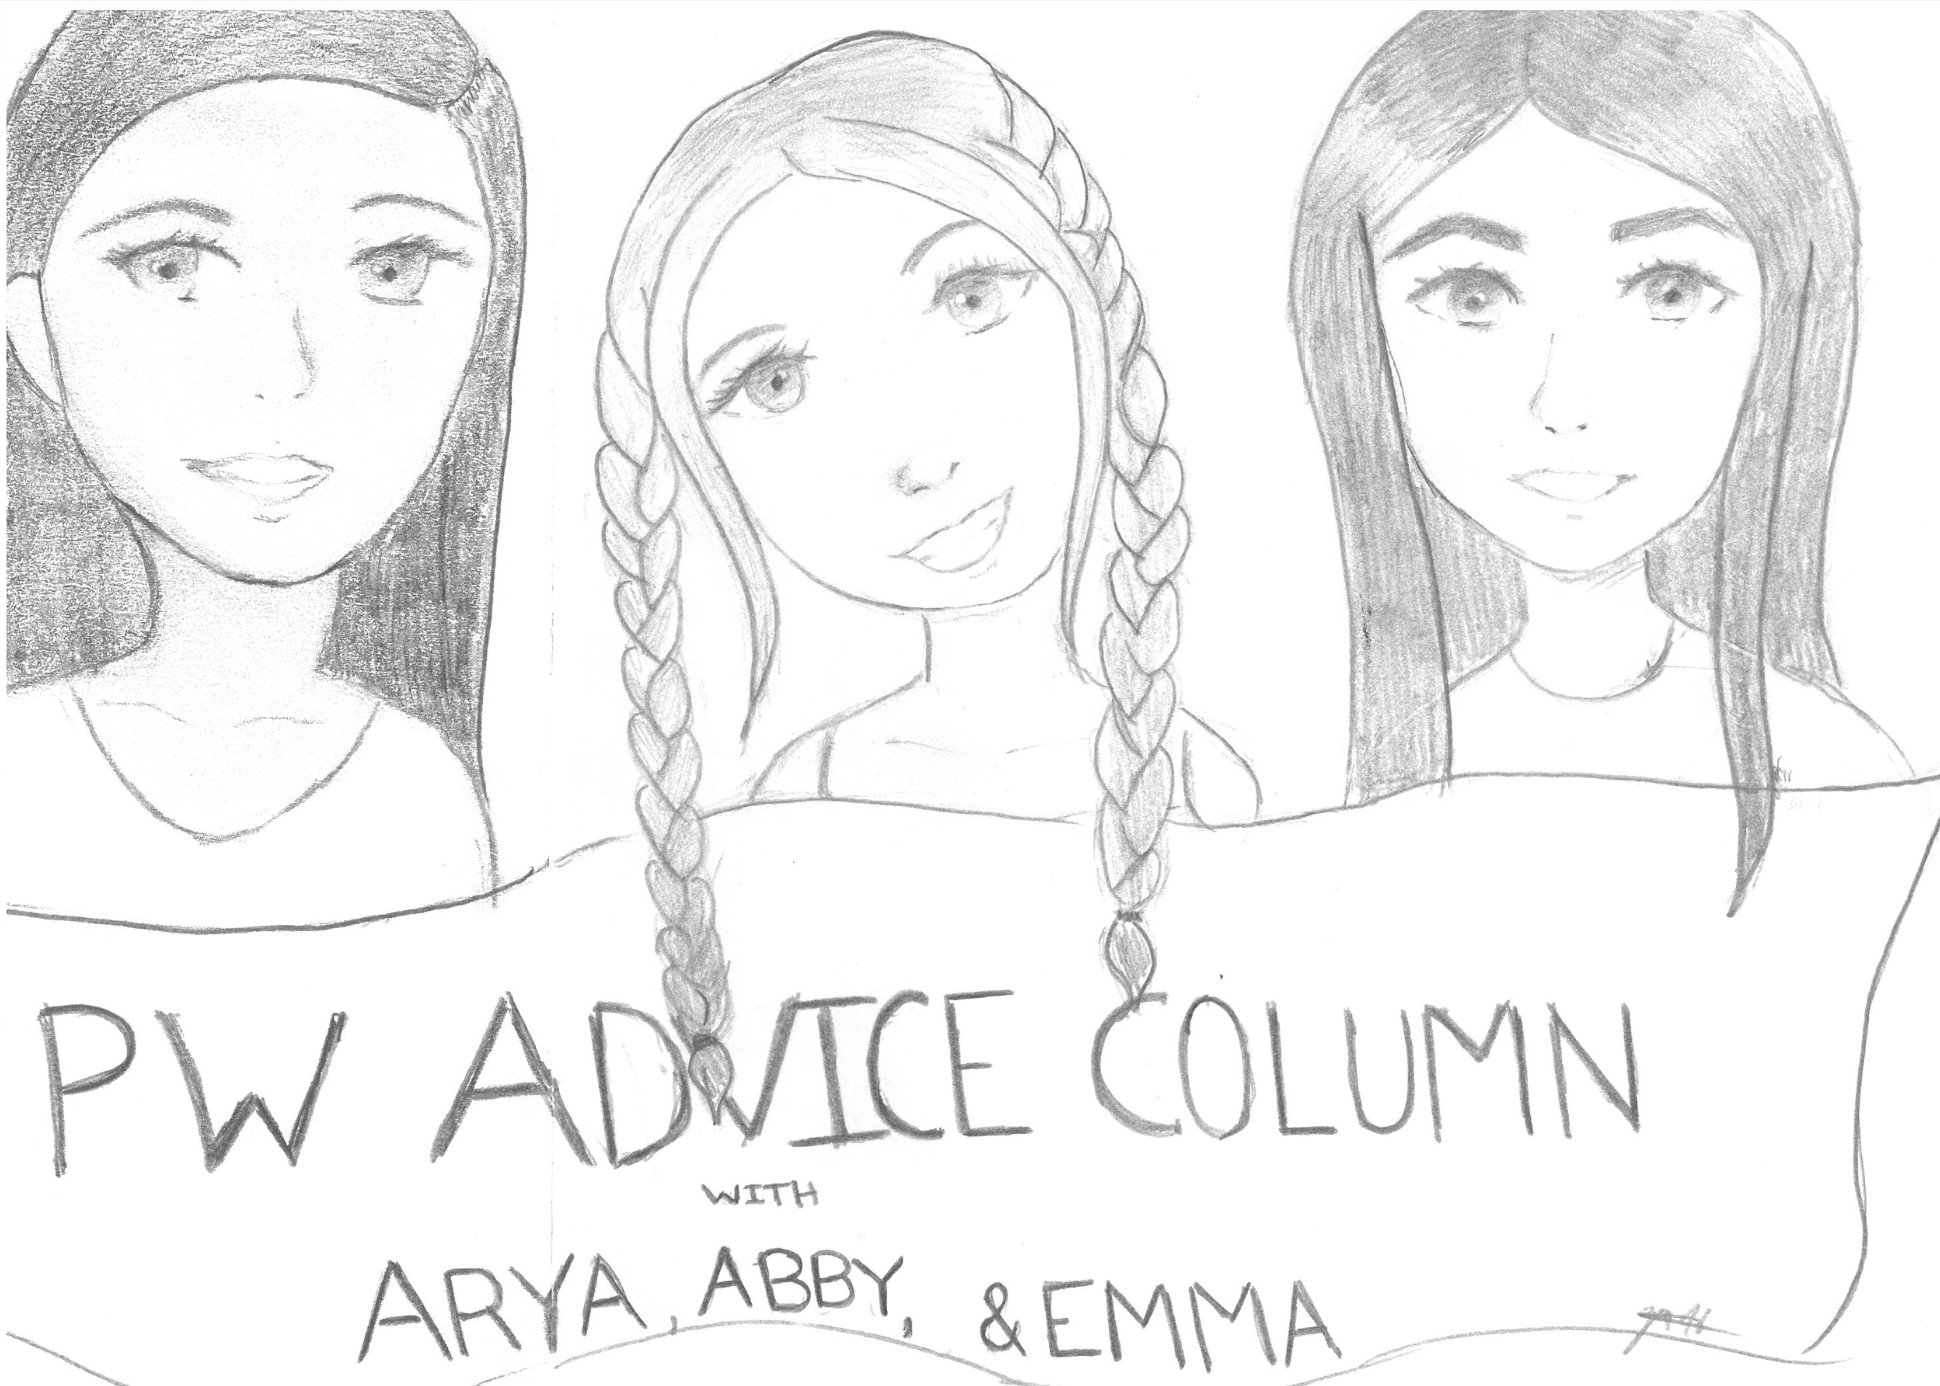 pencil drawing of three girls with text that says PW advice column with Arya, Abby & Emma